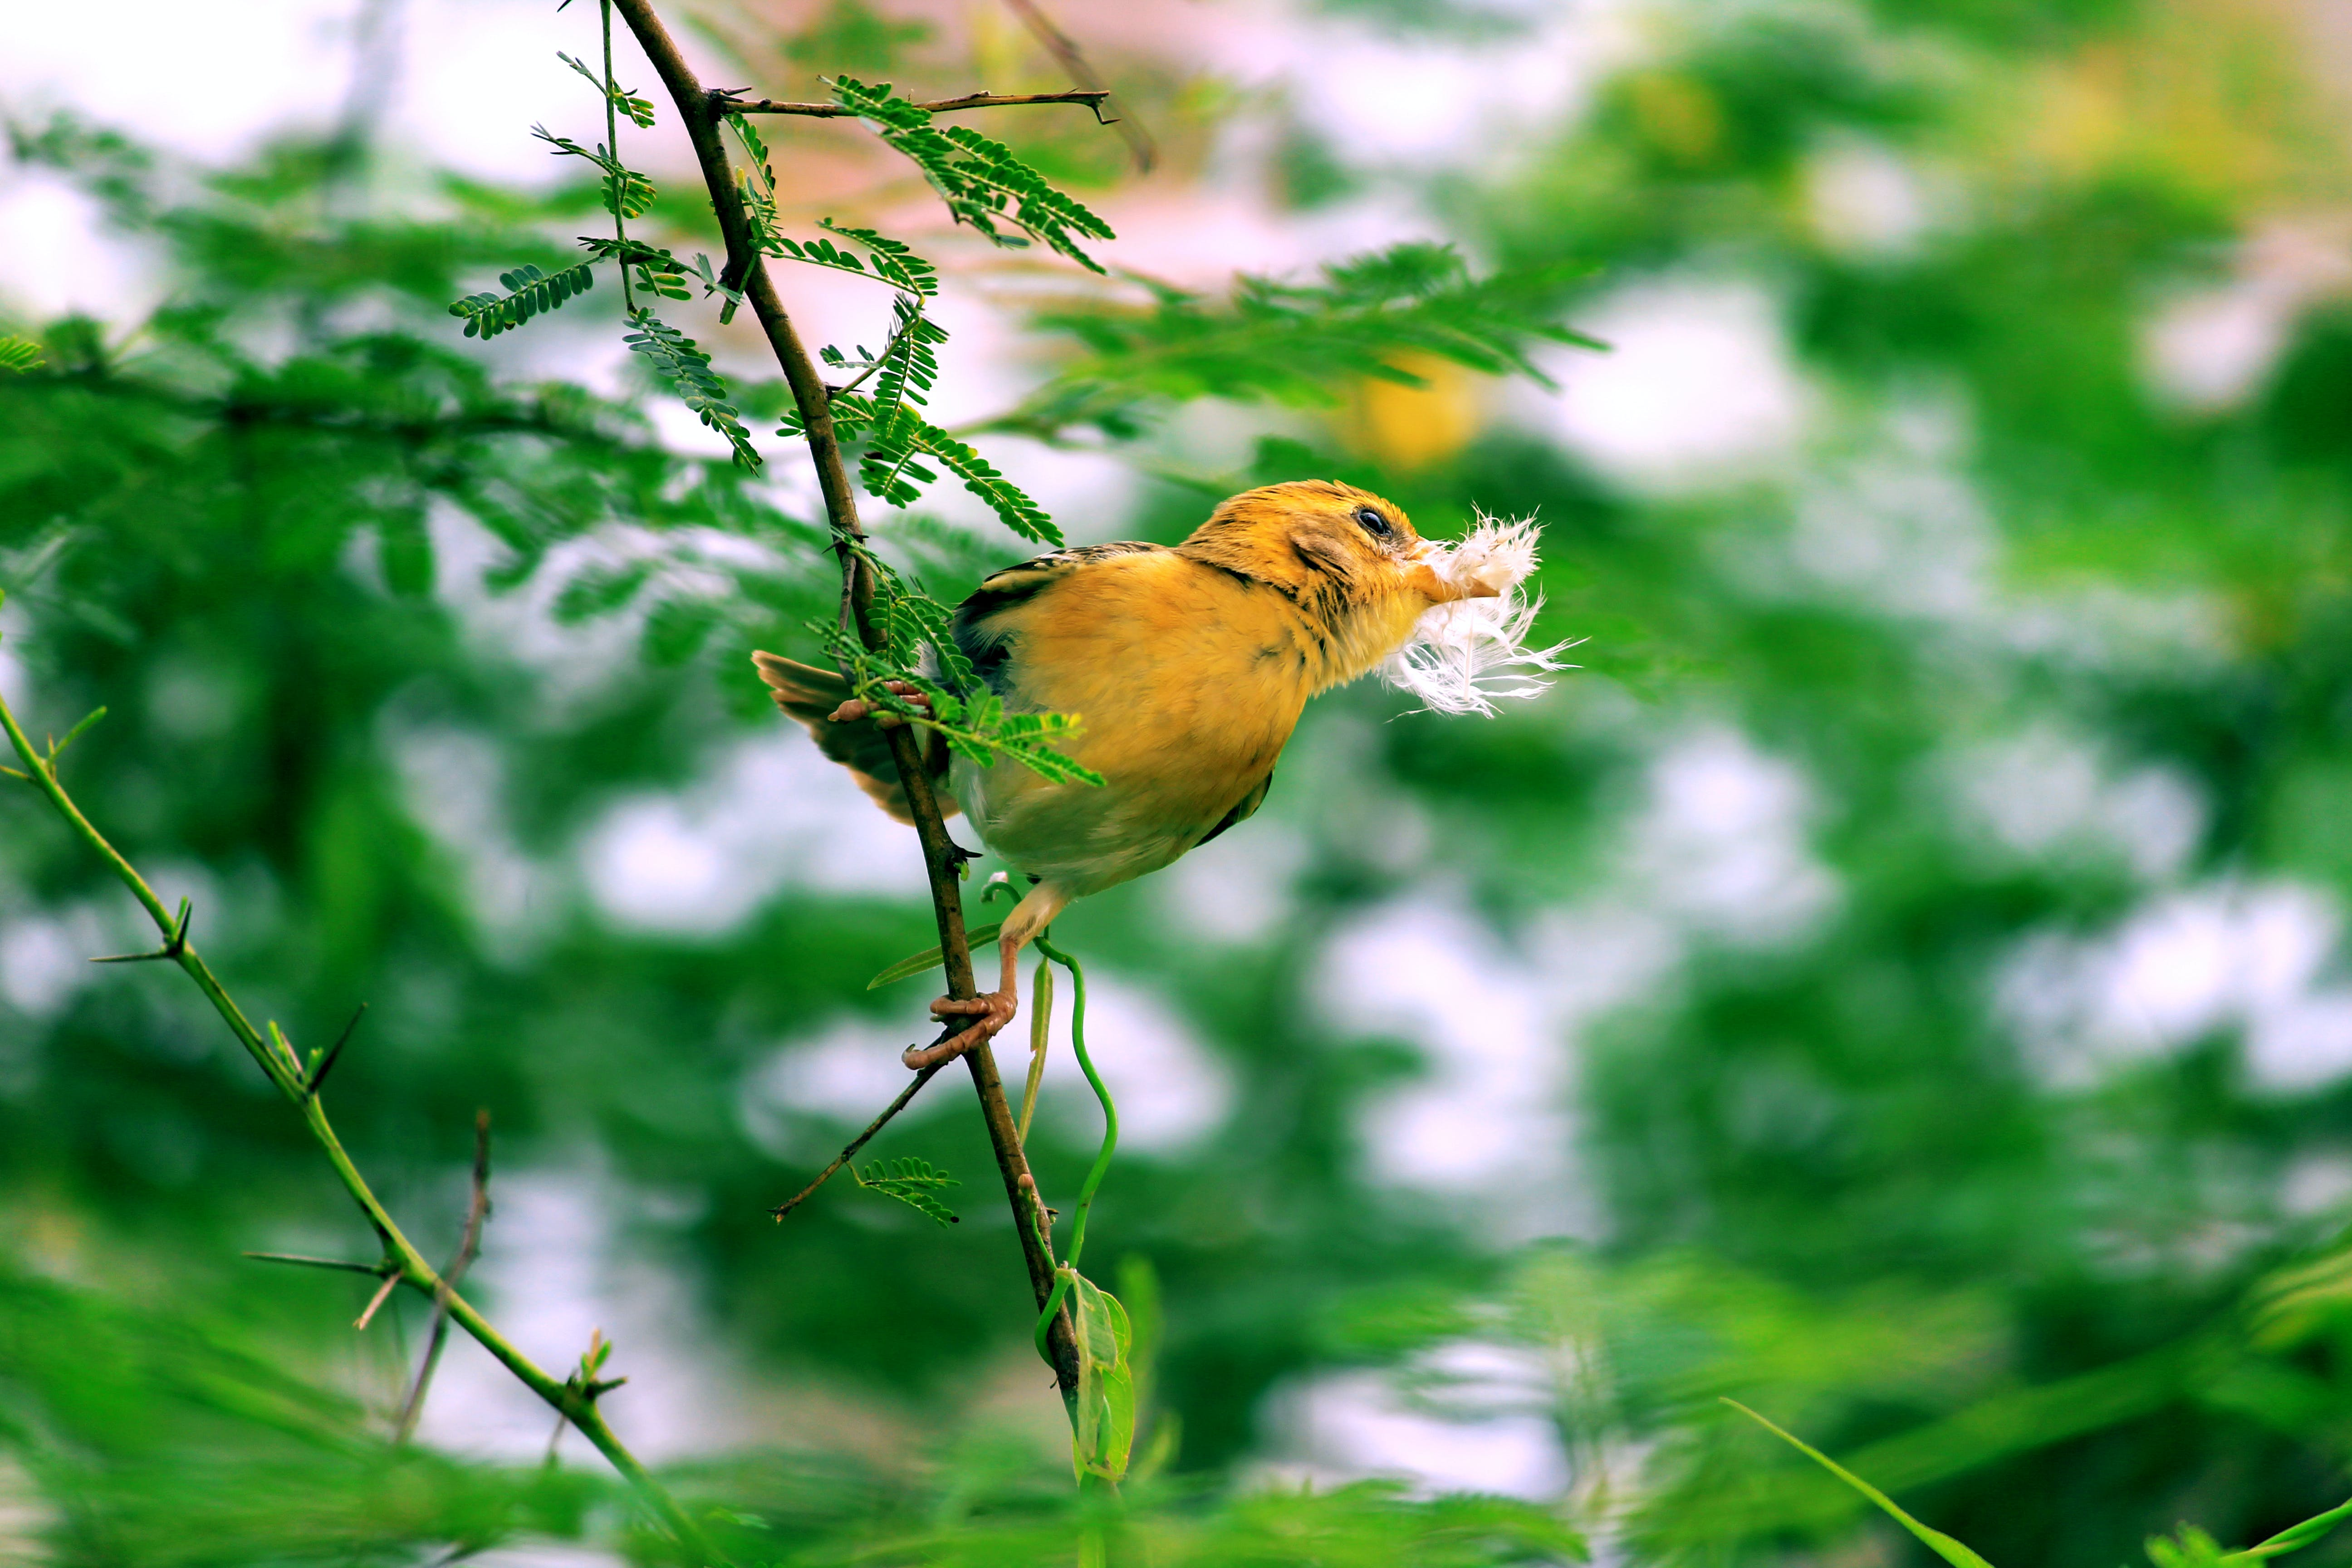 Yellow Bird Perched on Tree